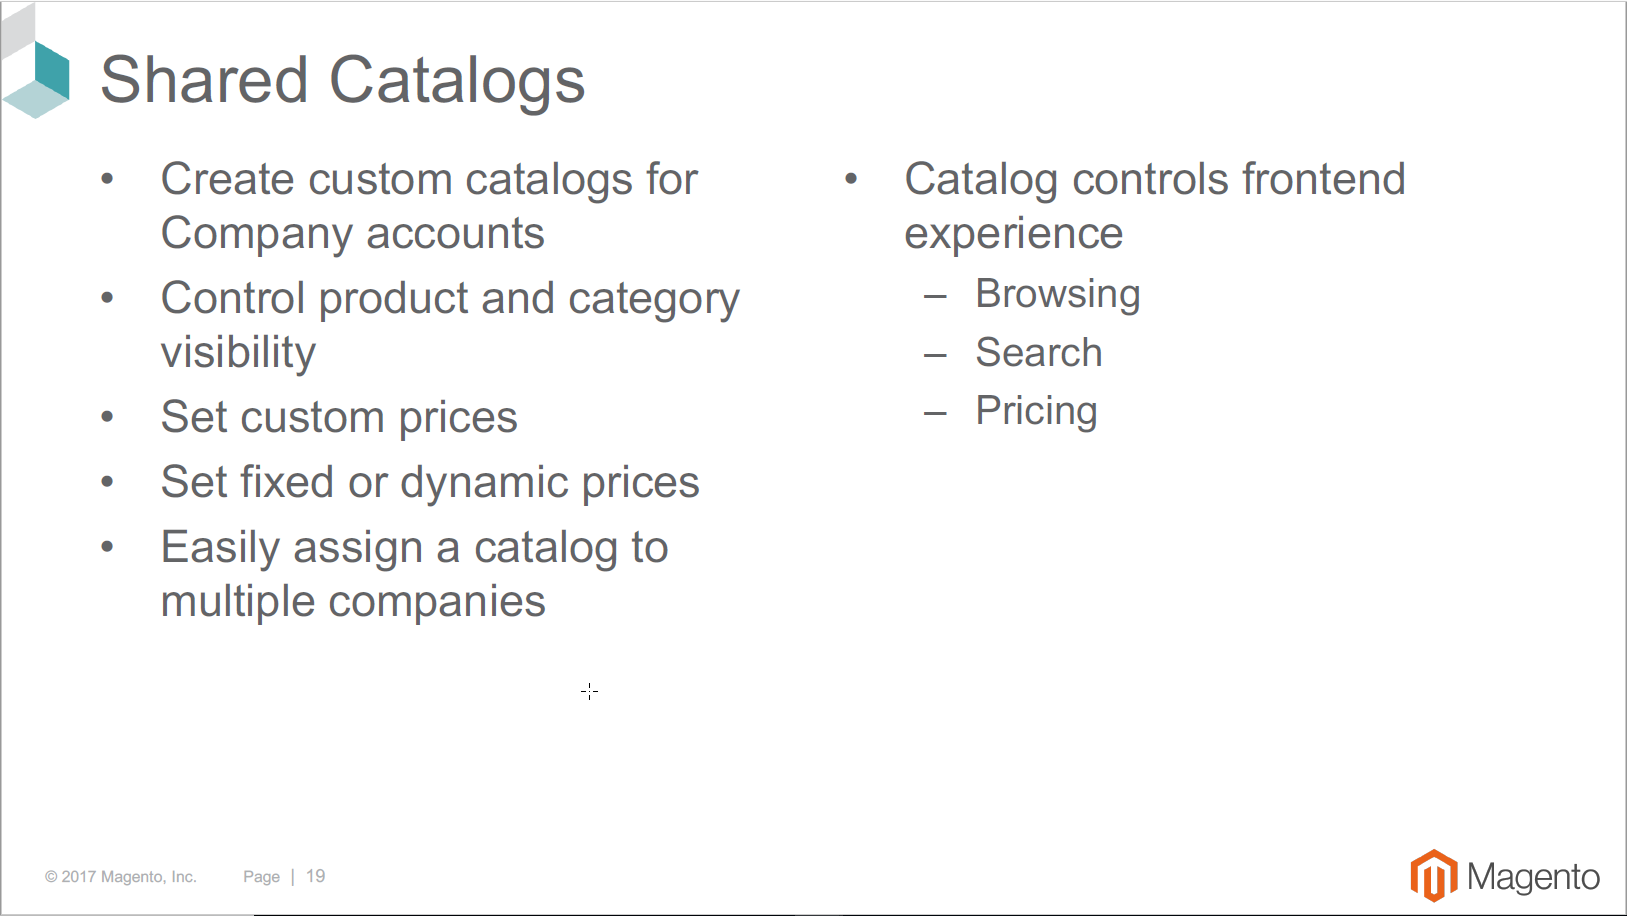 Shared Catalogs Magento B2B Edition